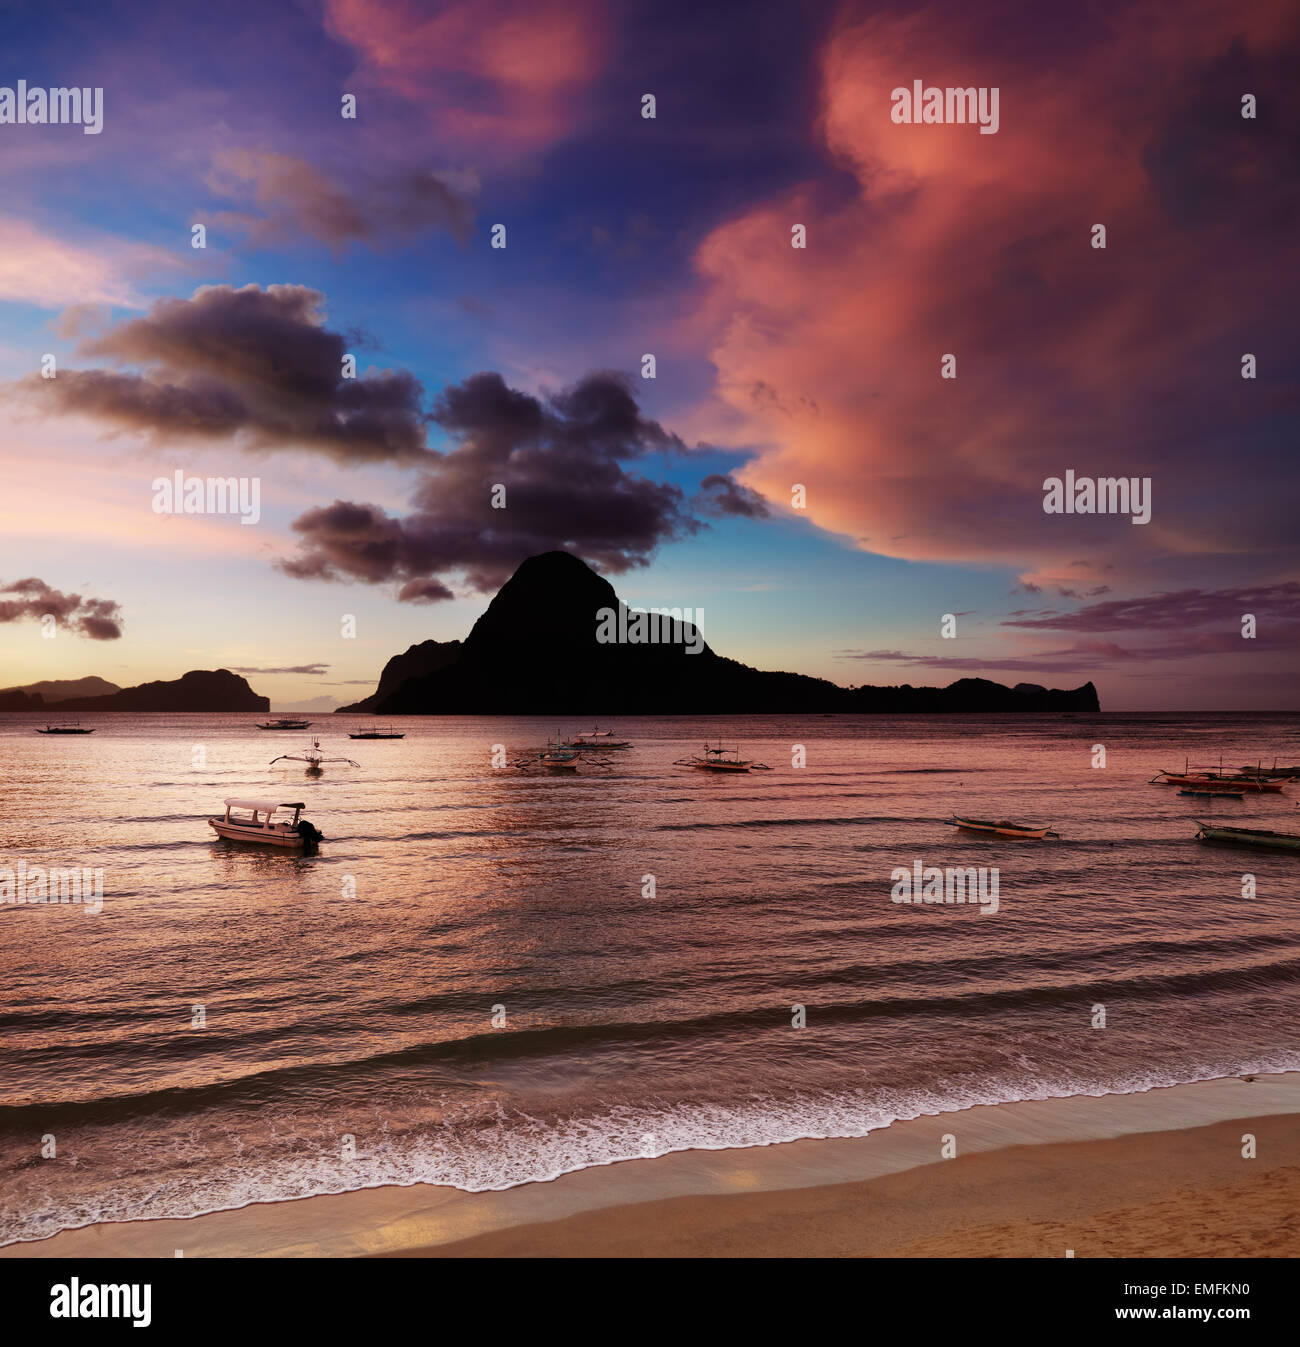 El Nido bay and Cadlao island at sunset, Palawan, Philippines - Stock Image